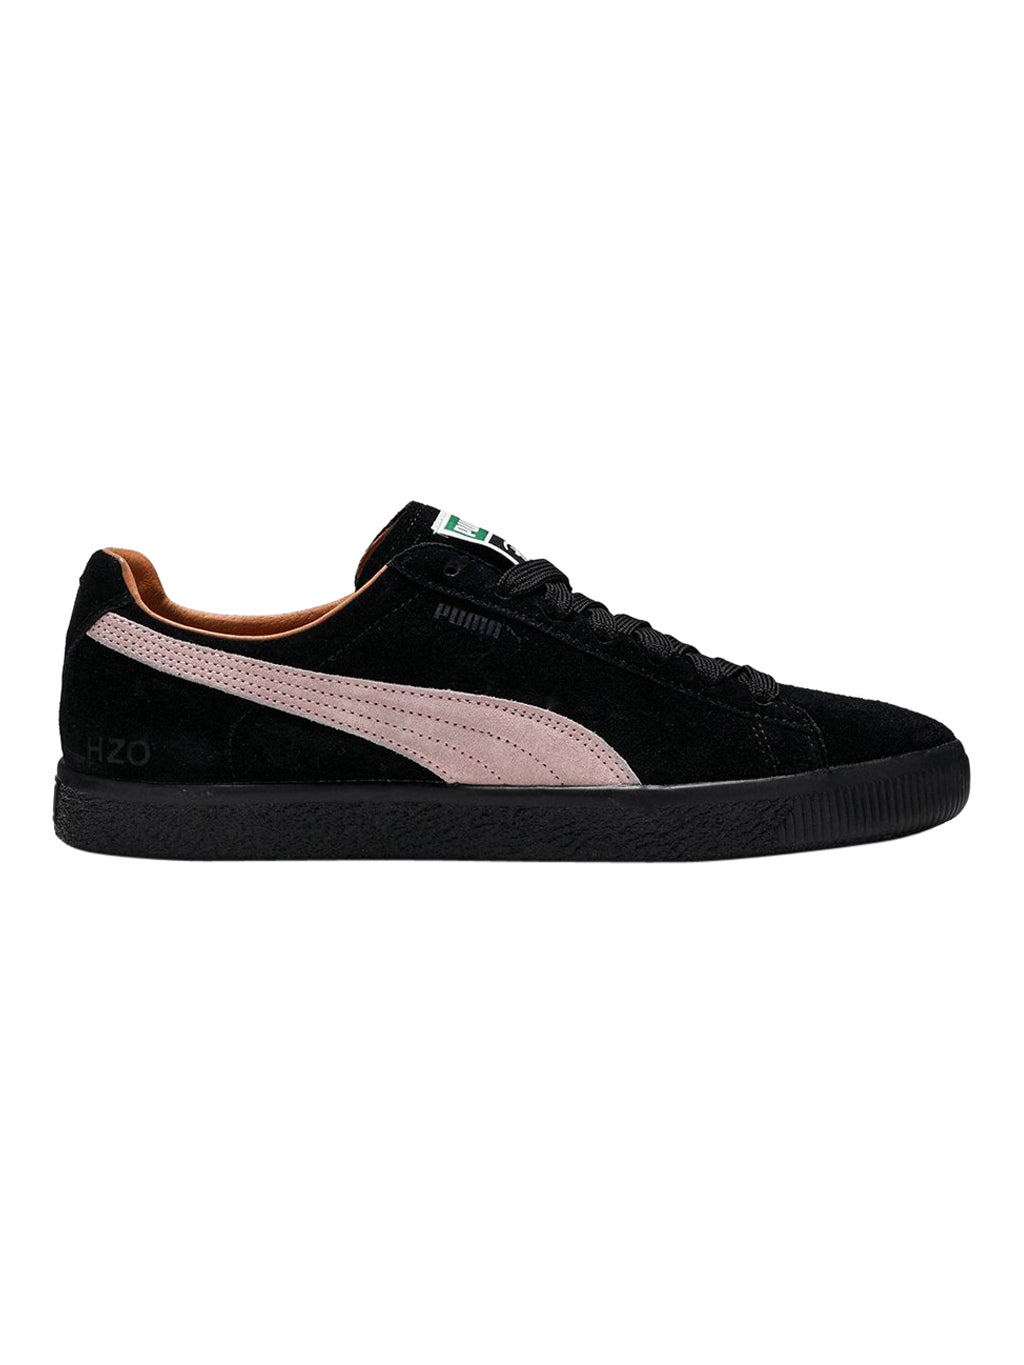 Black x Patta Clyde 'Amsterdam' Sneakers